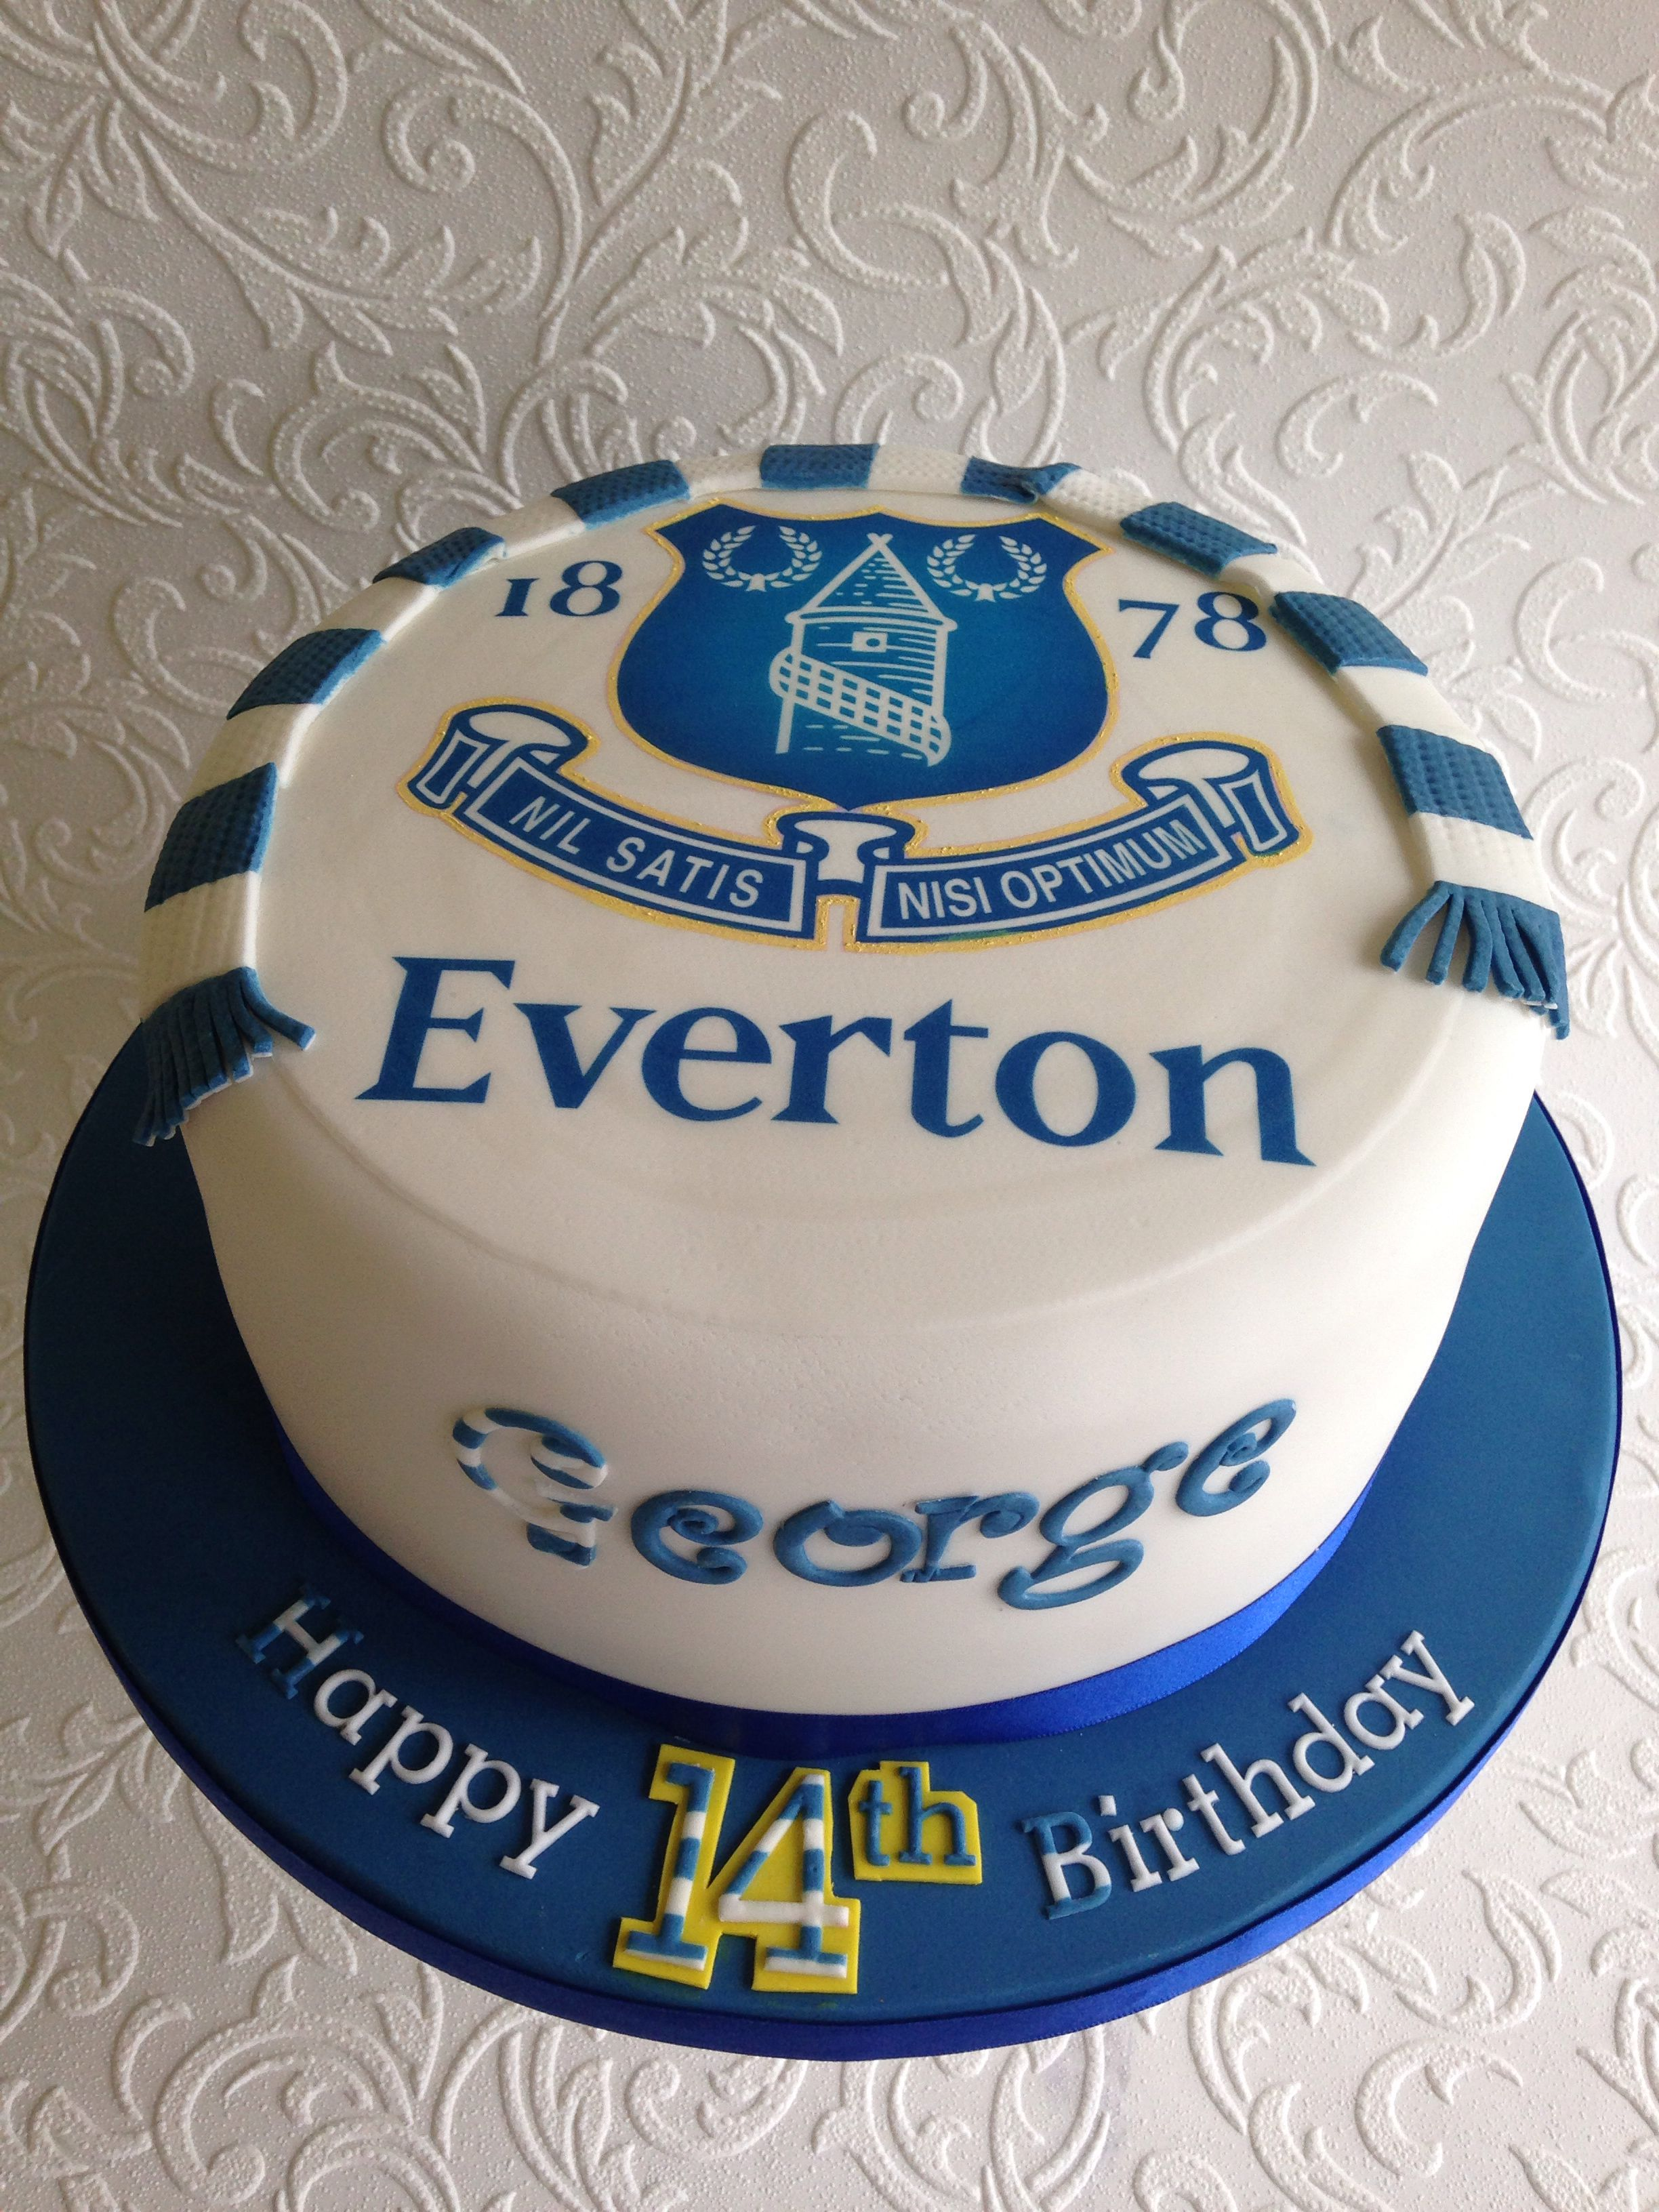 Everton Football Club Cake Cupcake Toppers Cakes Cupcakes 16 Birthday